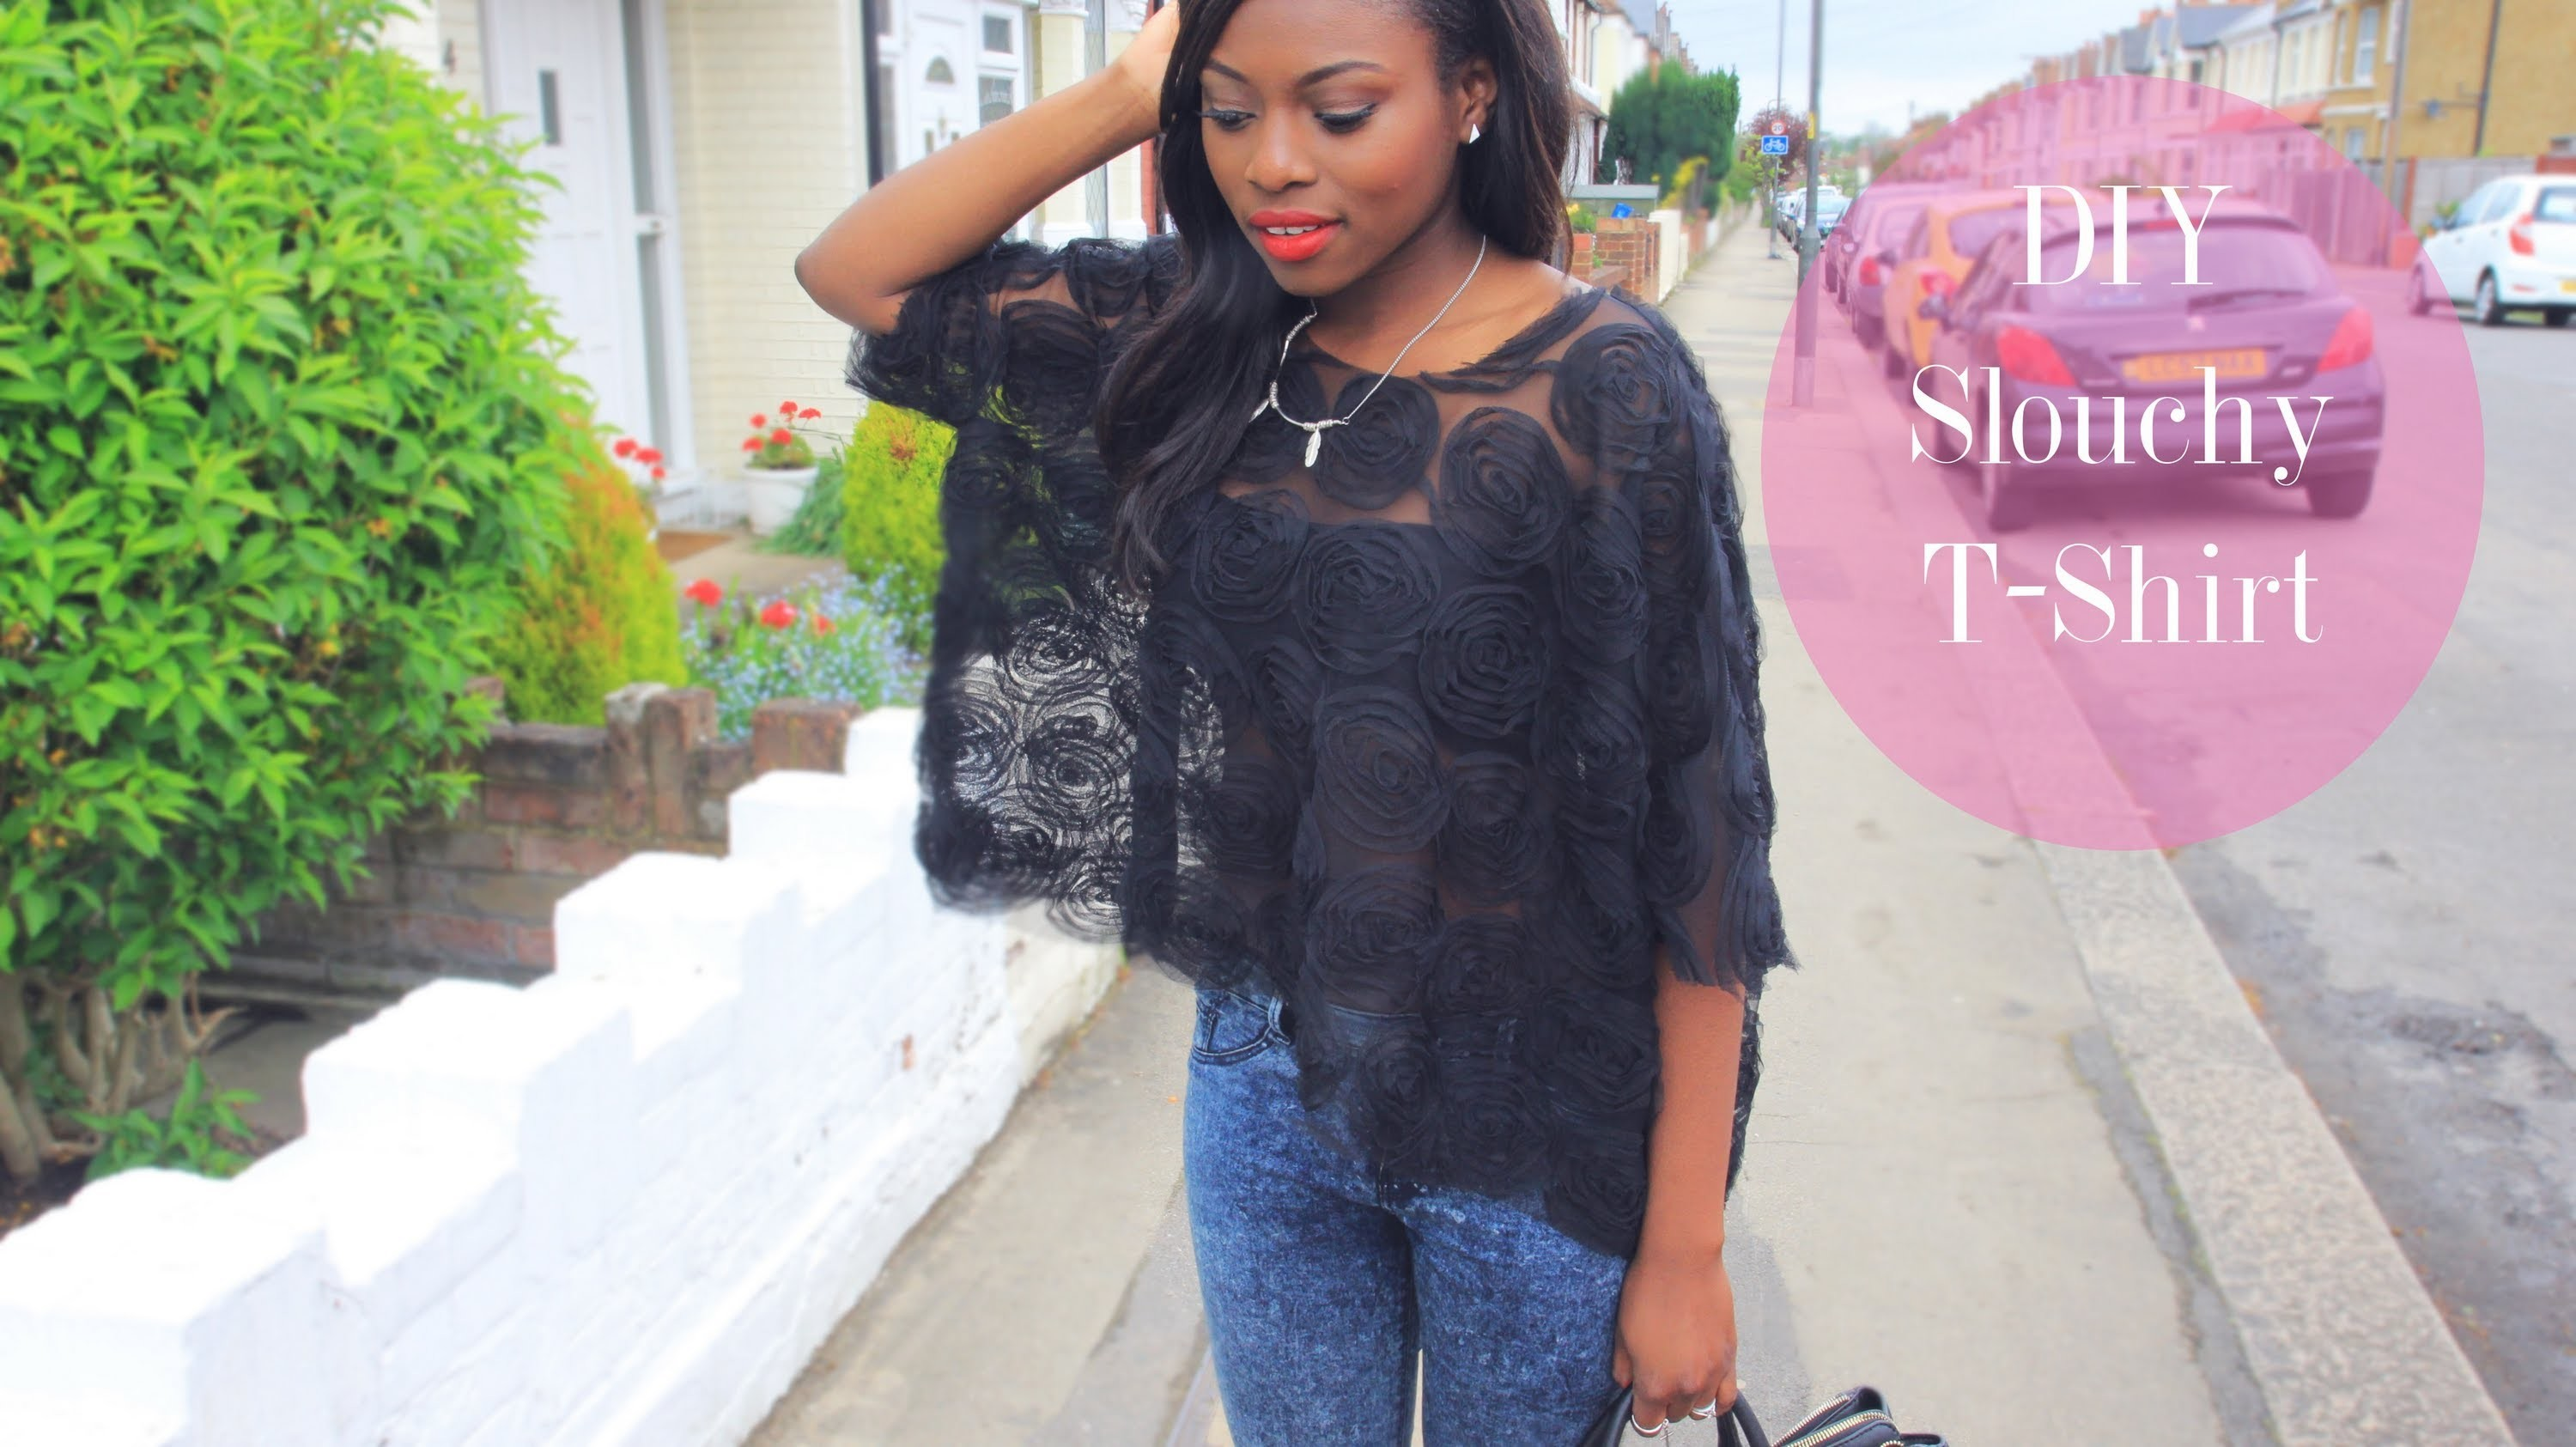 MY FIRST FASHION DIY| A SLOUCHY T SHIRT